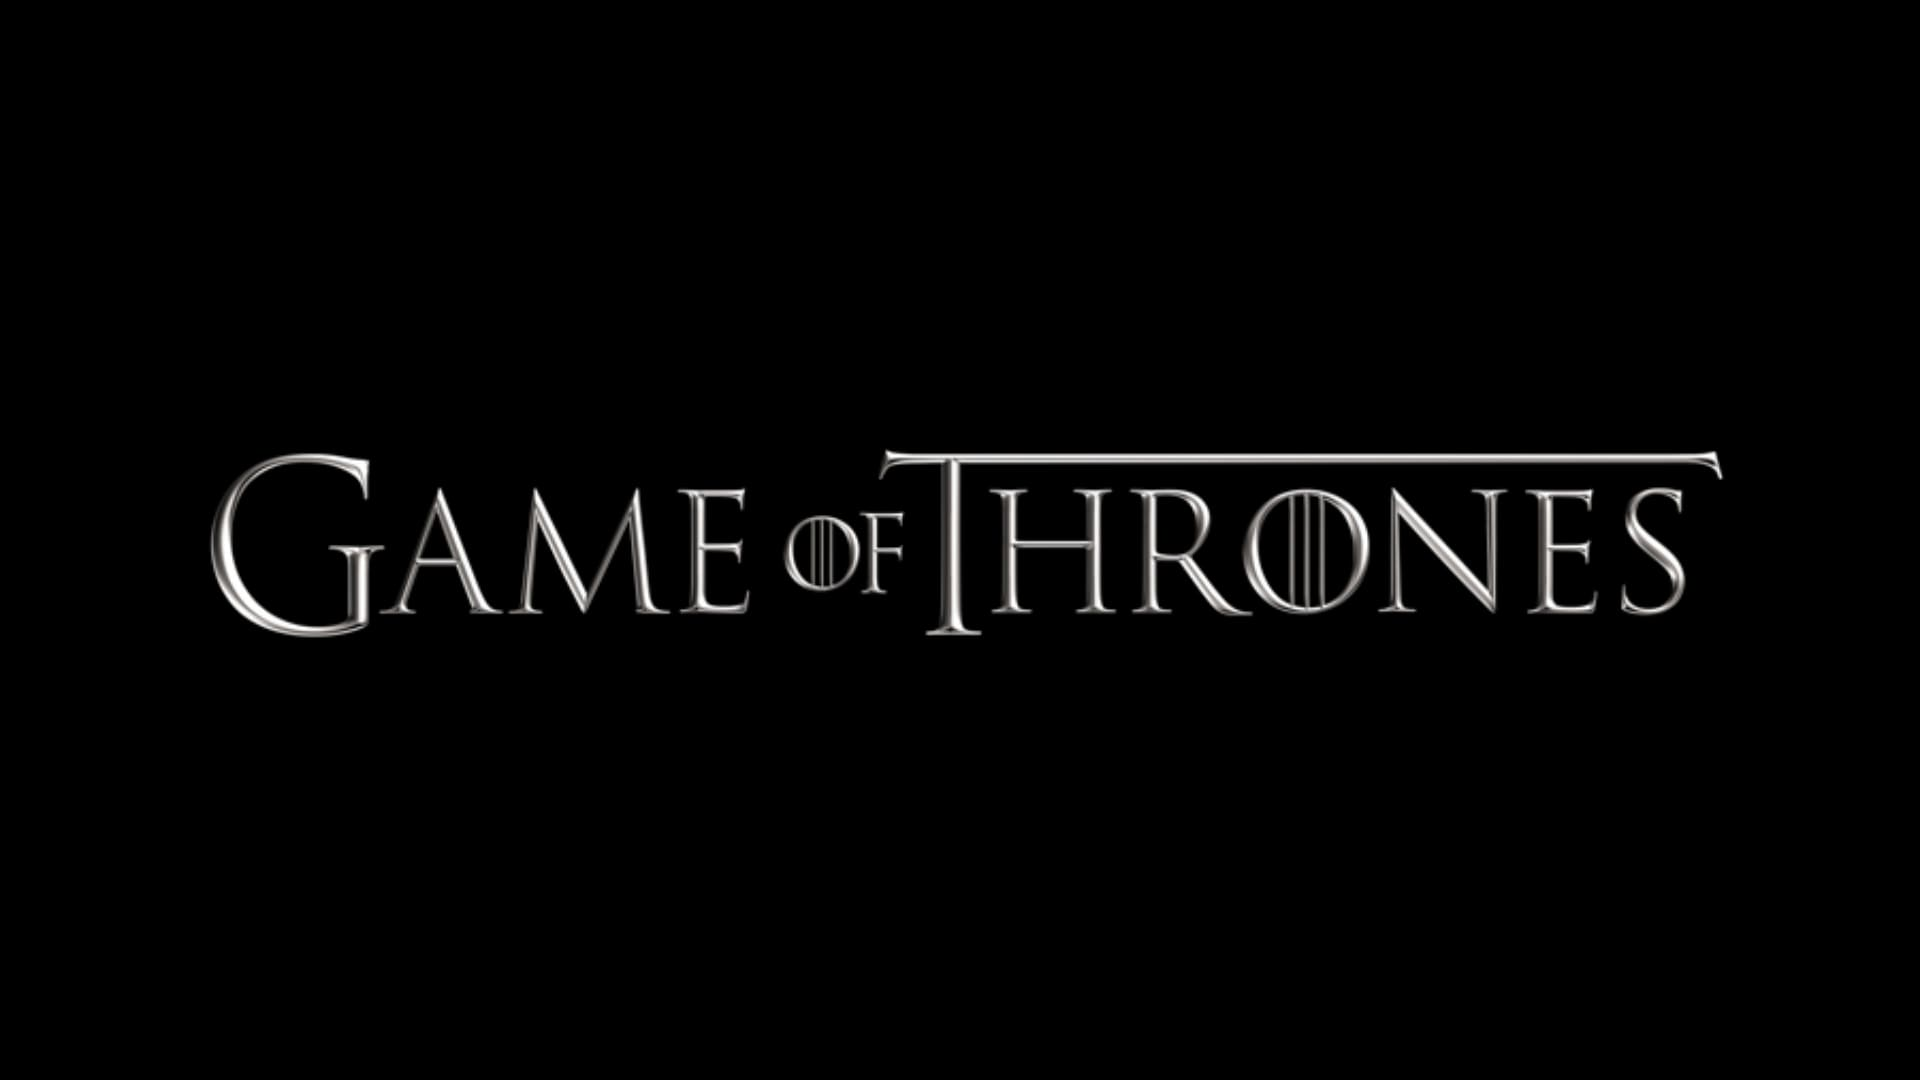 Game of thrones png logo